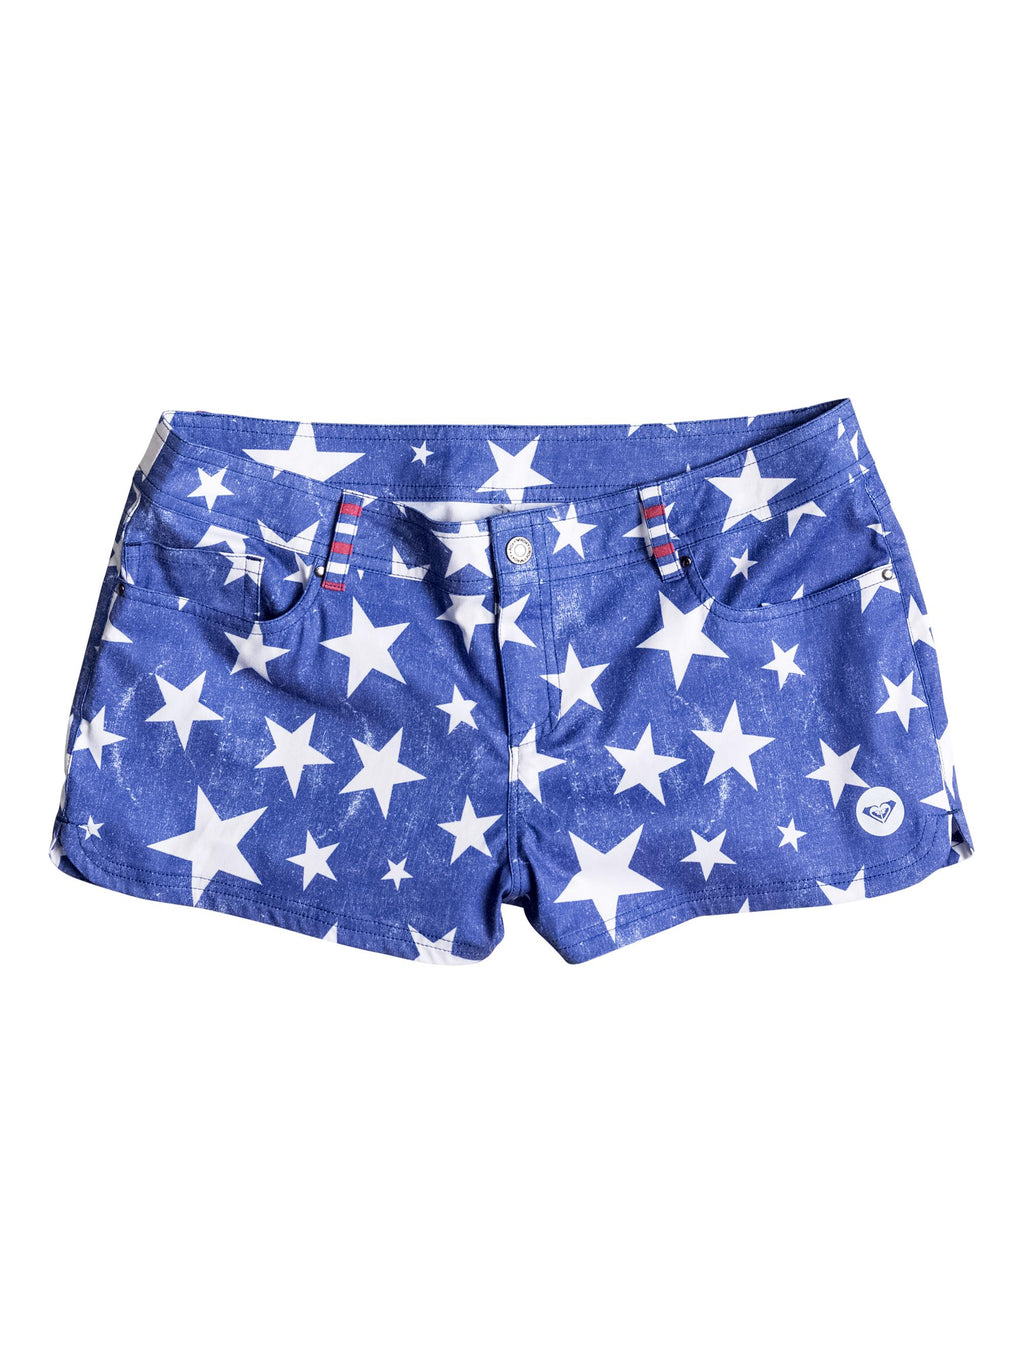 Star Day Boardshorts - Women's